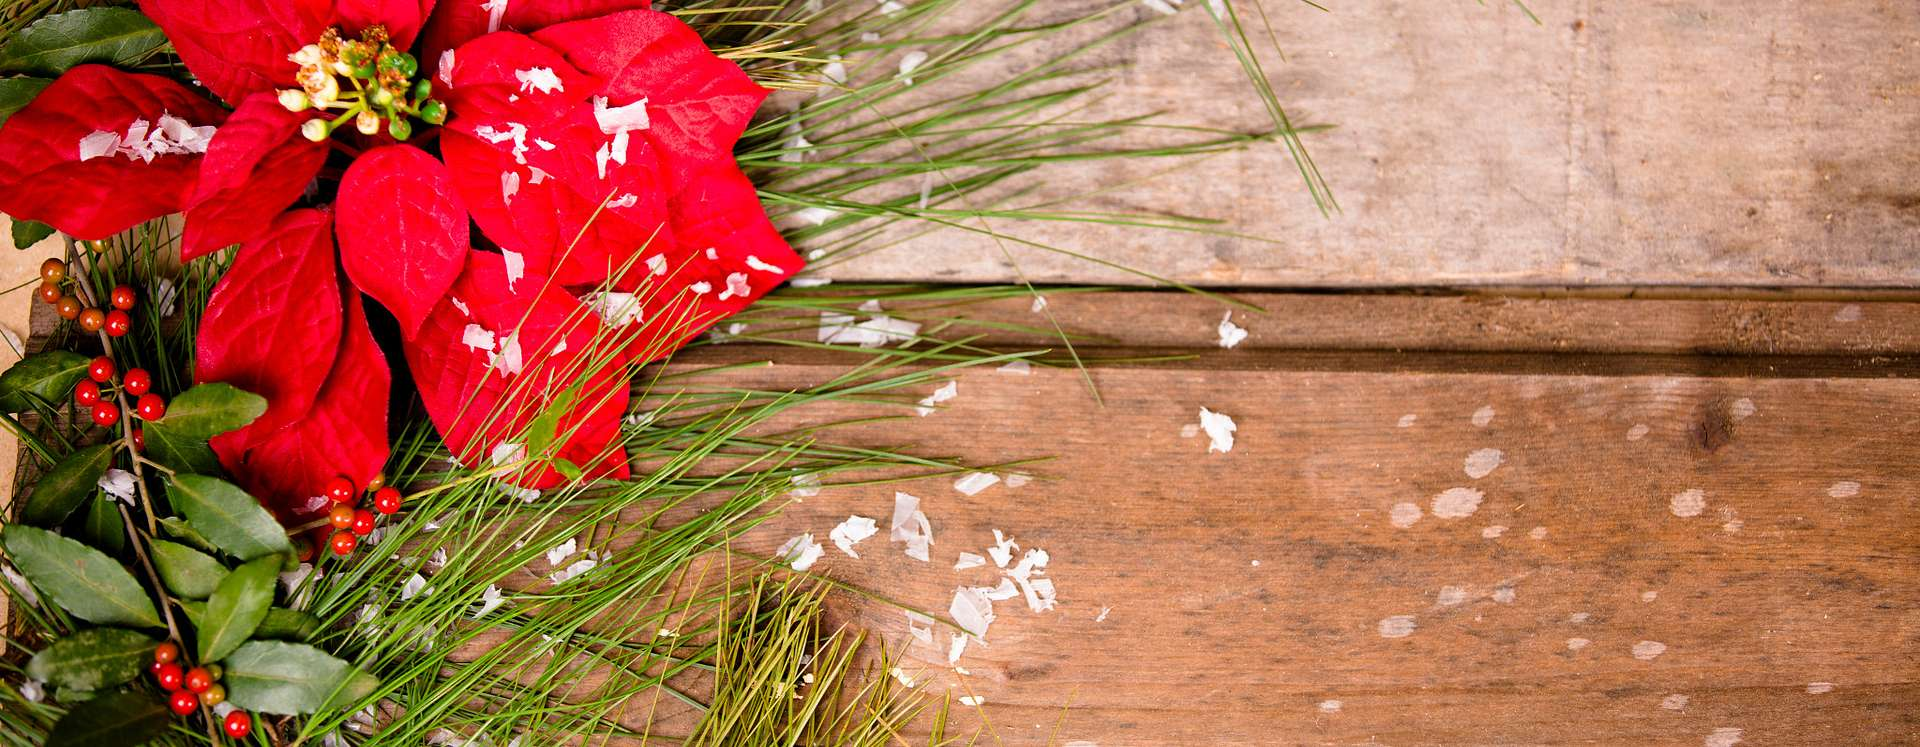 A festive holiday poinsettia on a wood background.